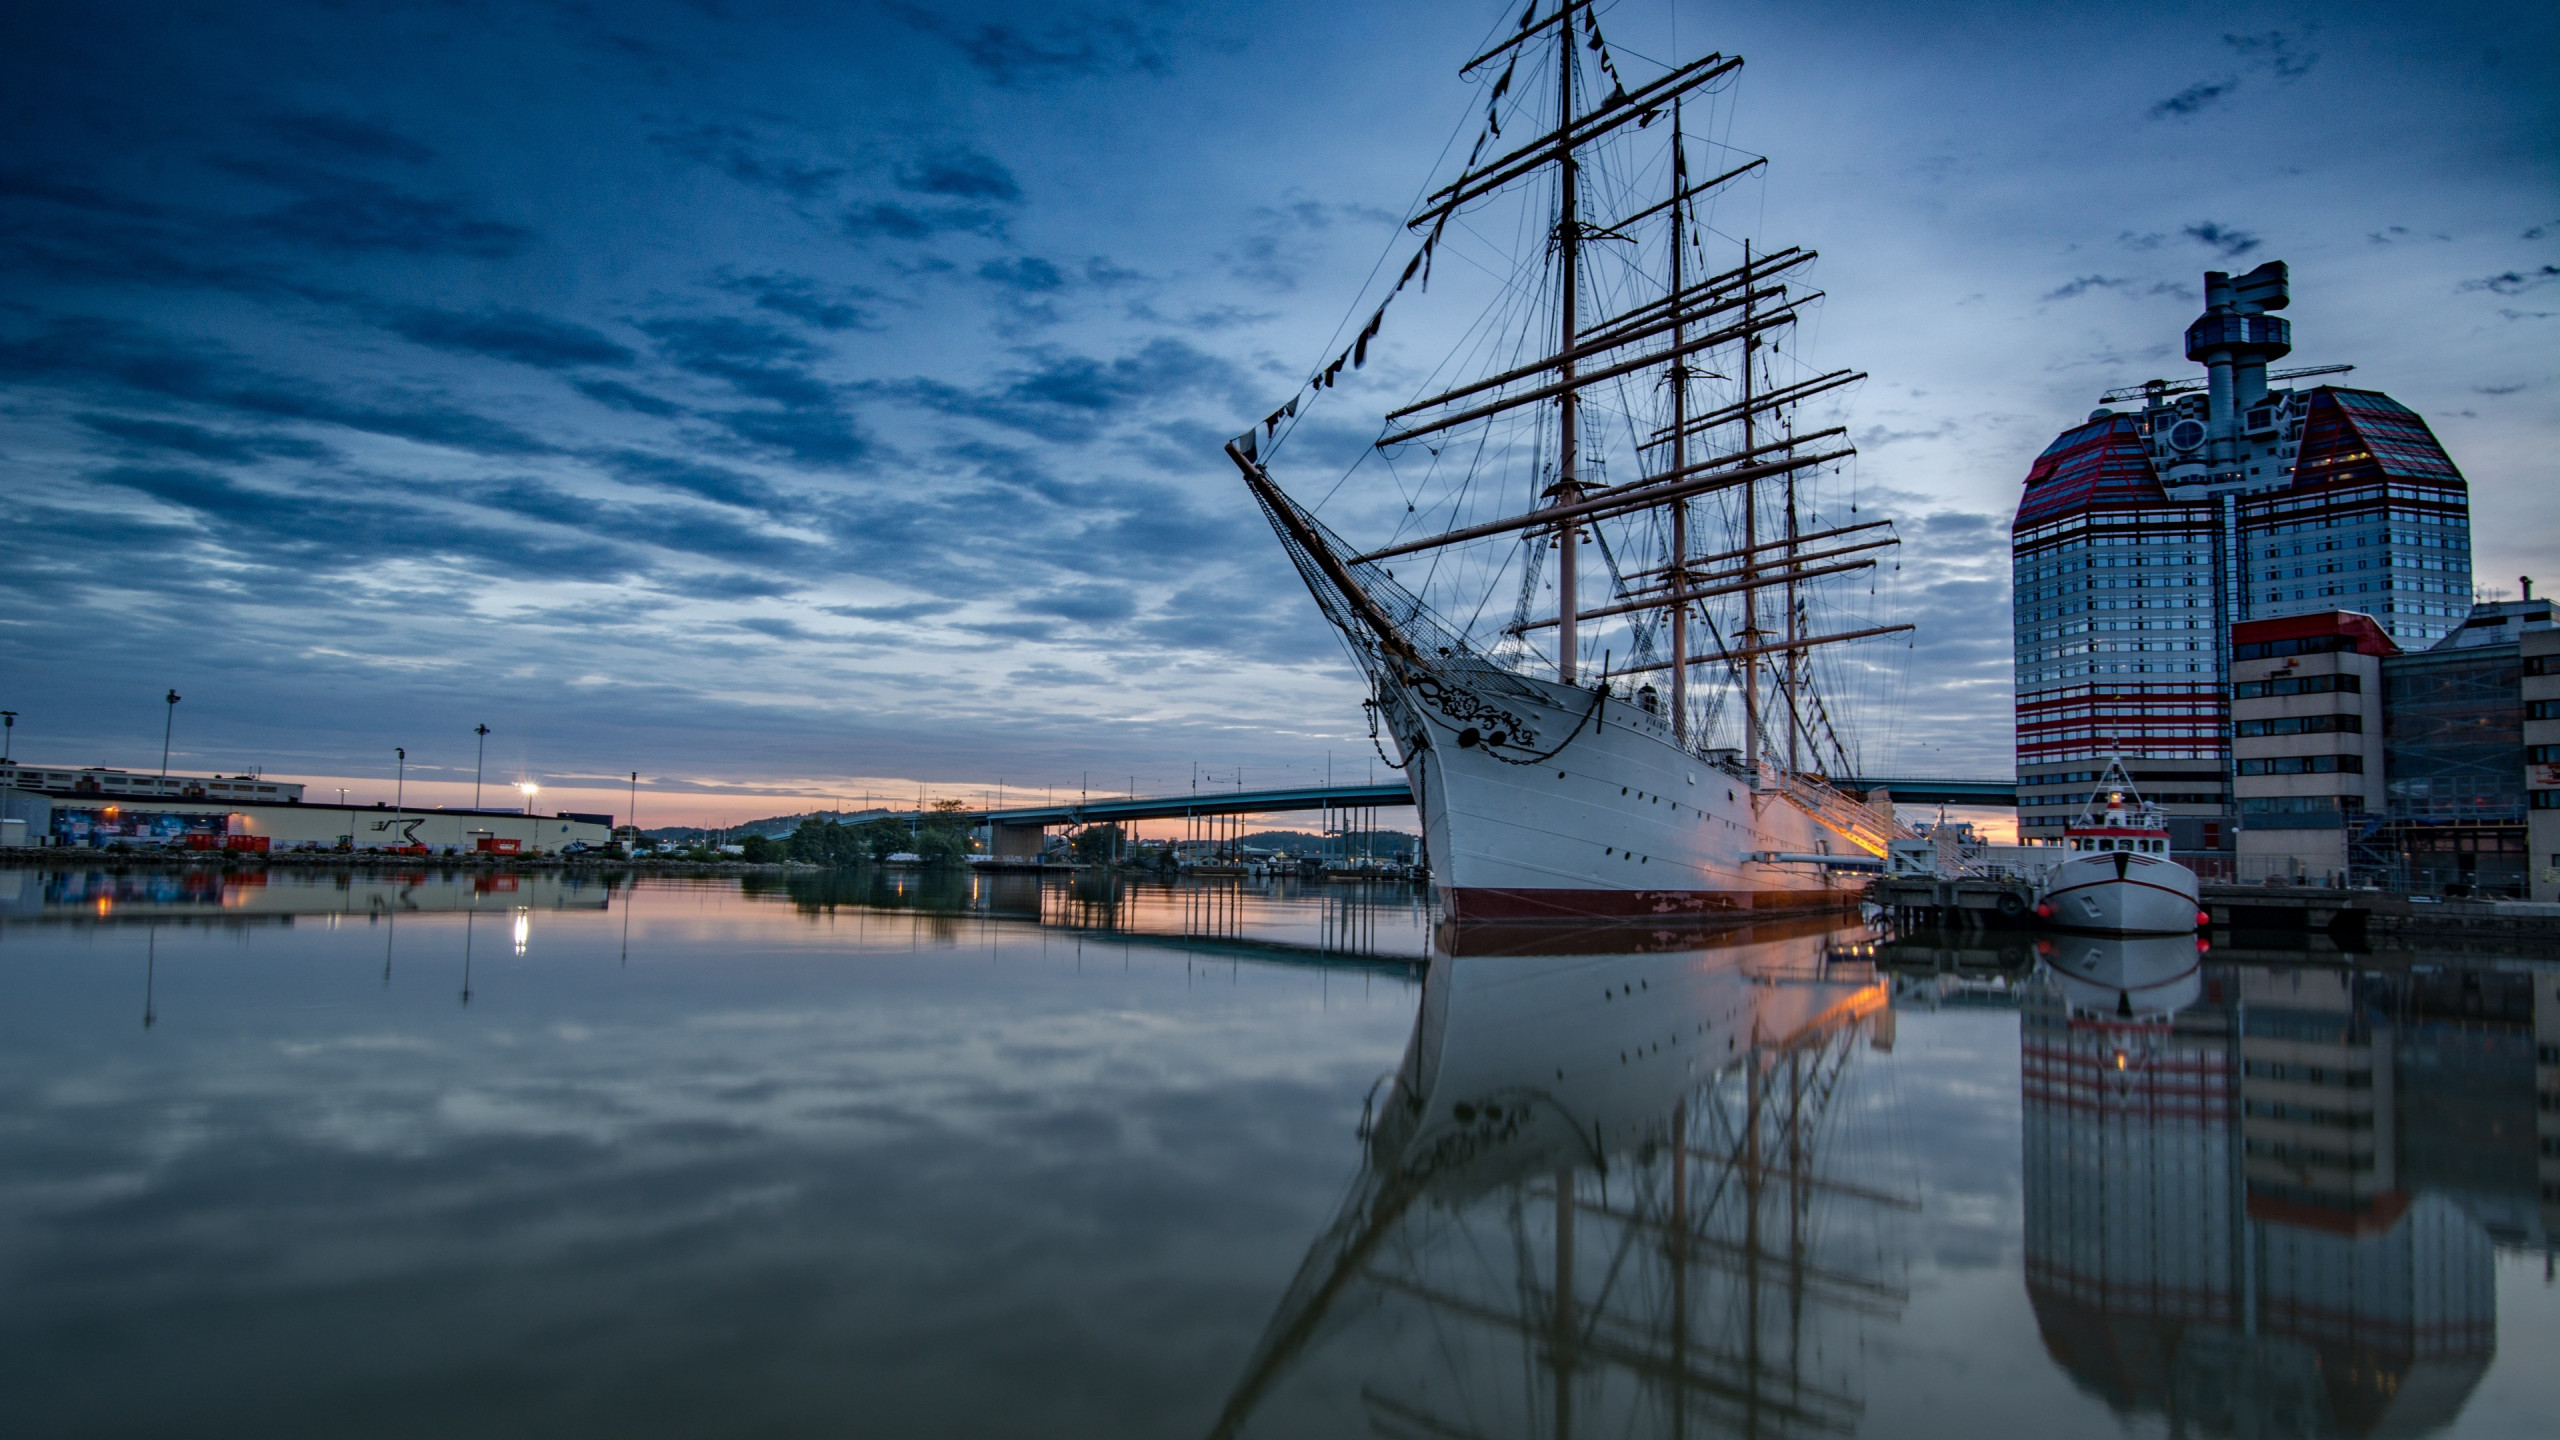 Historic wooden sailing ship in Gothenburg Harbour wallpaper 2560x1440